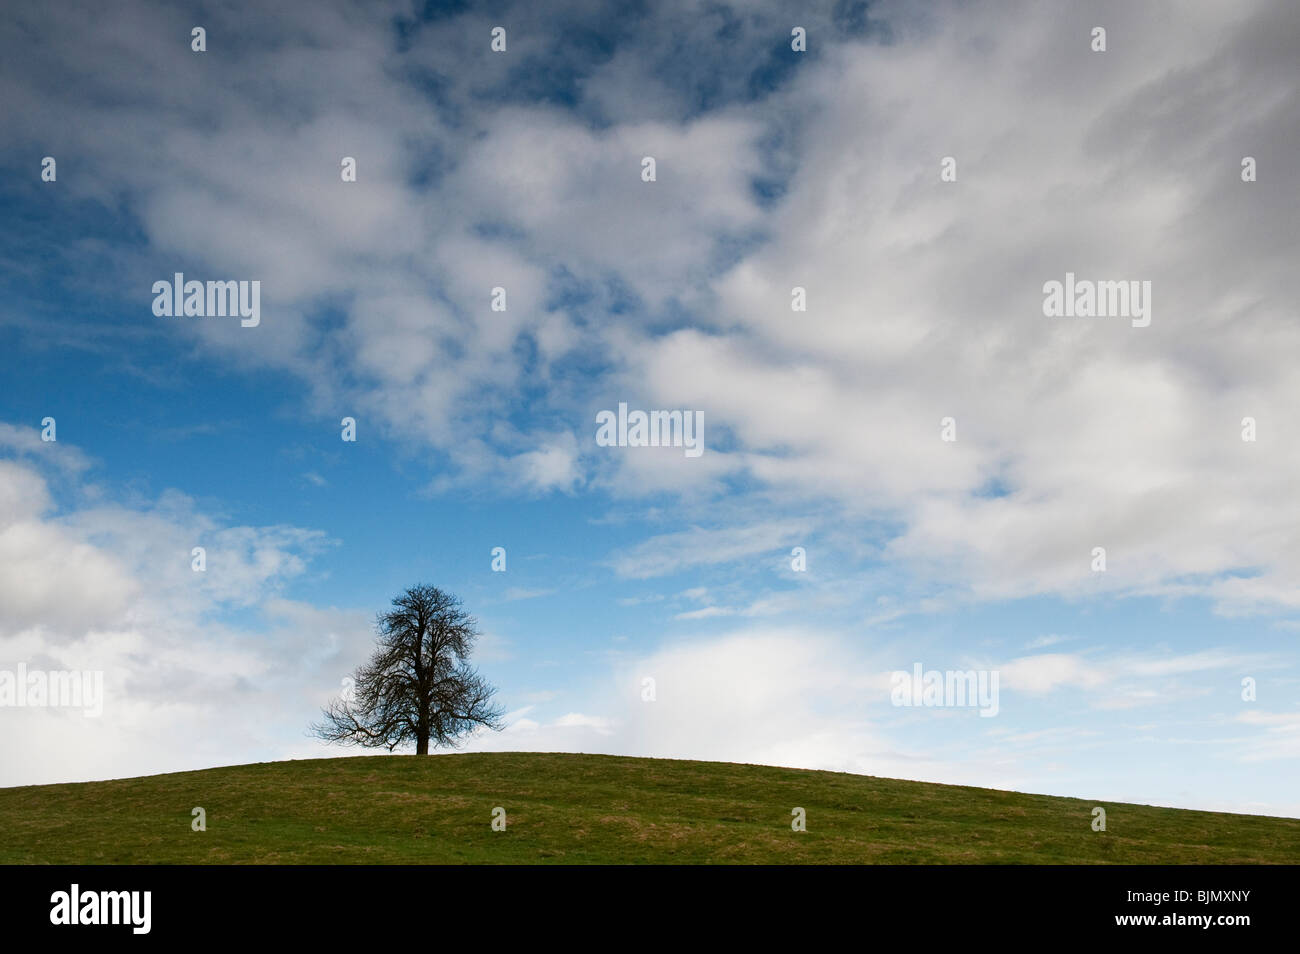 Winter Horse Chestnut Tree in the English countryside. UK - Stock Image